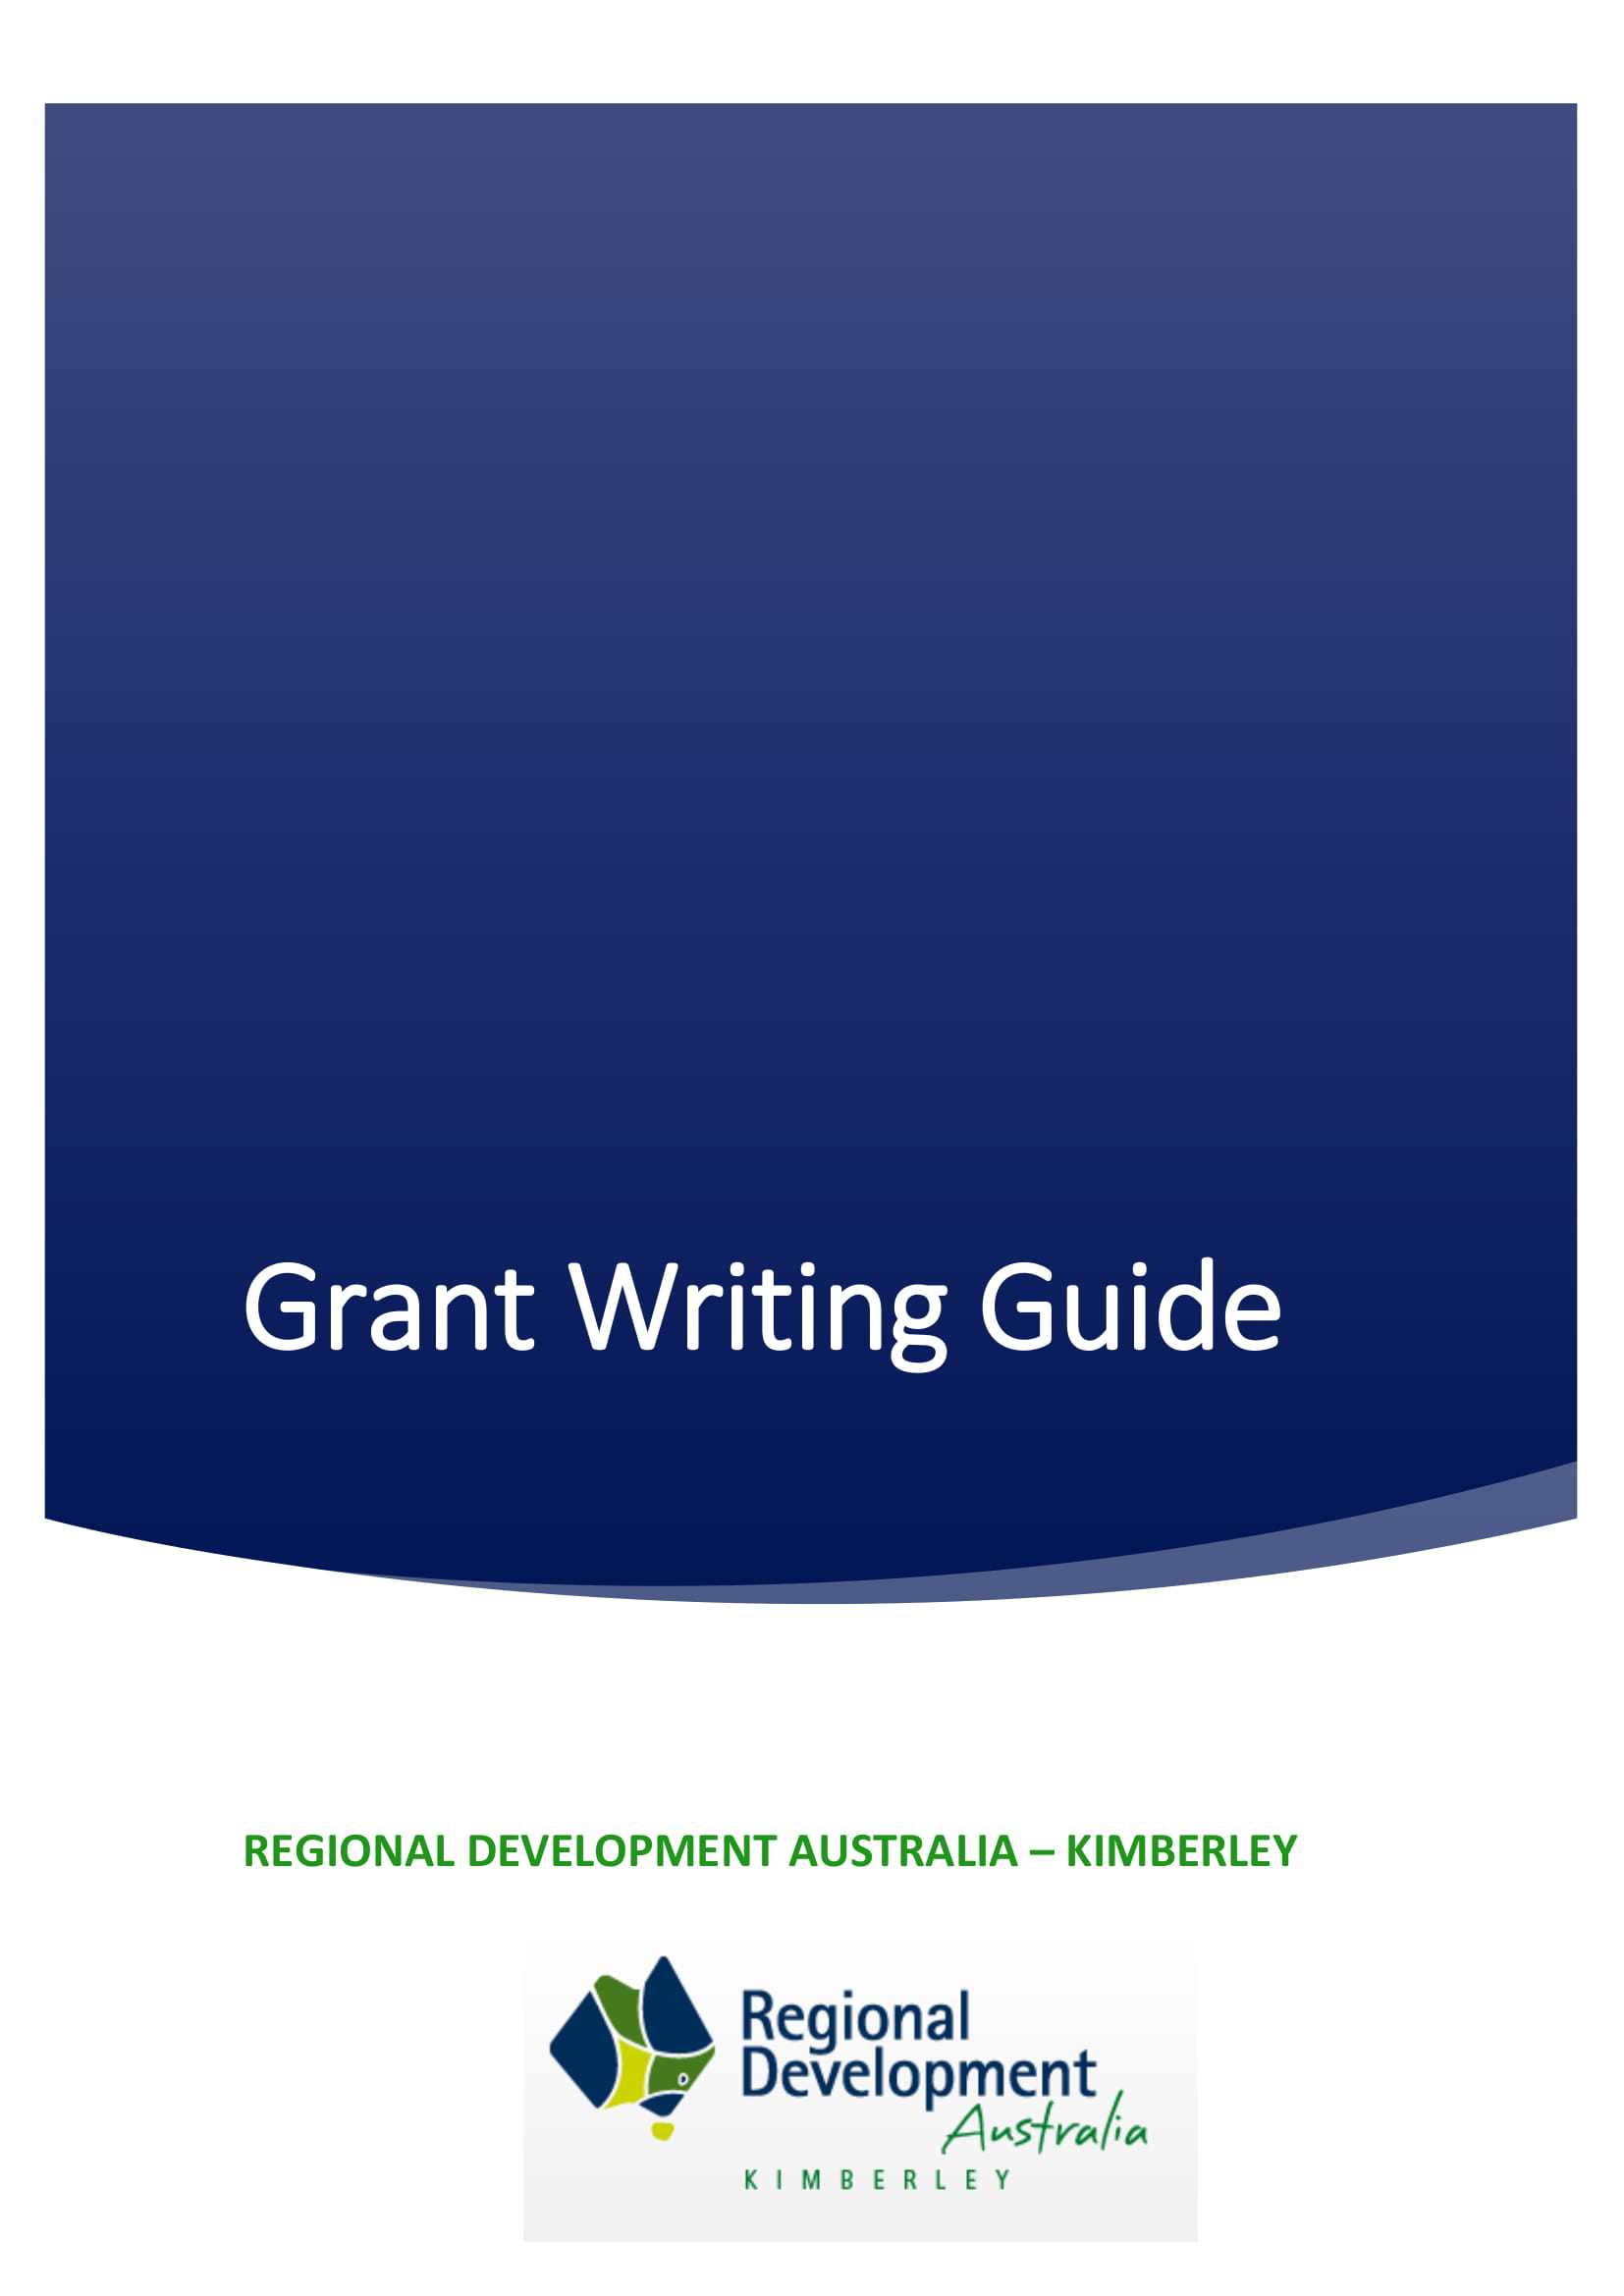 RDA-Kimberley-Grant-Writing-Guide-Cover